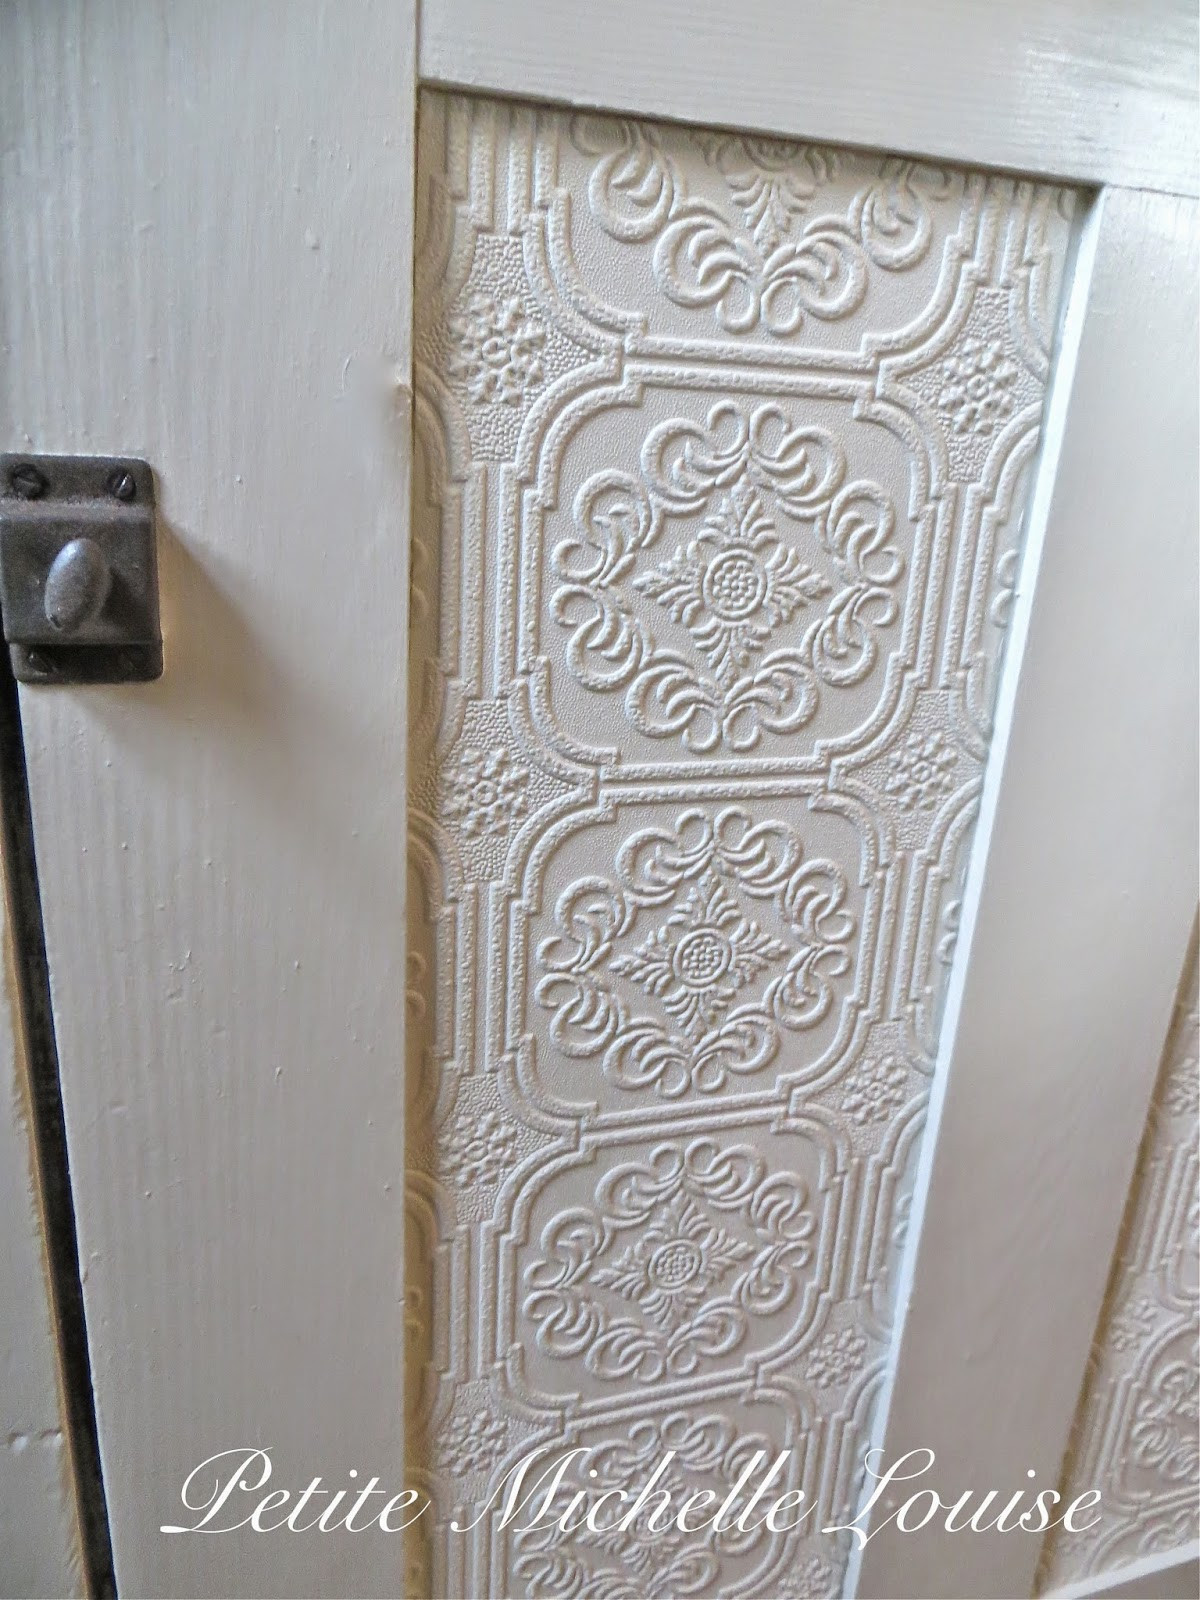 Best ideas about DIY Cabinet Doors . Save or Pin Petite Michelle Louise DIY Cabinet Door Facelift Now.